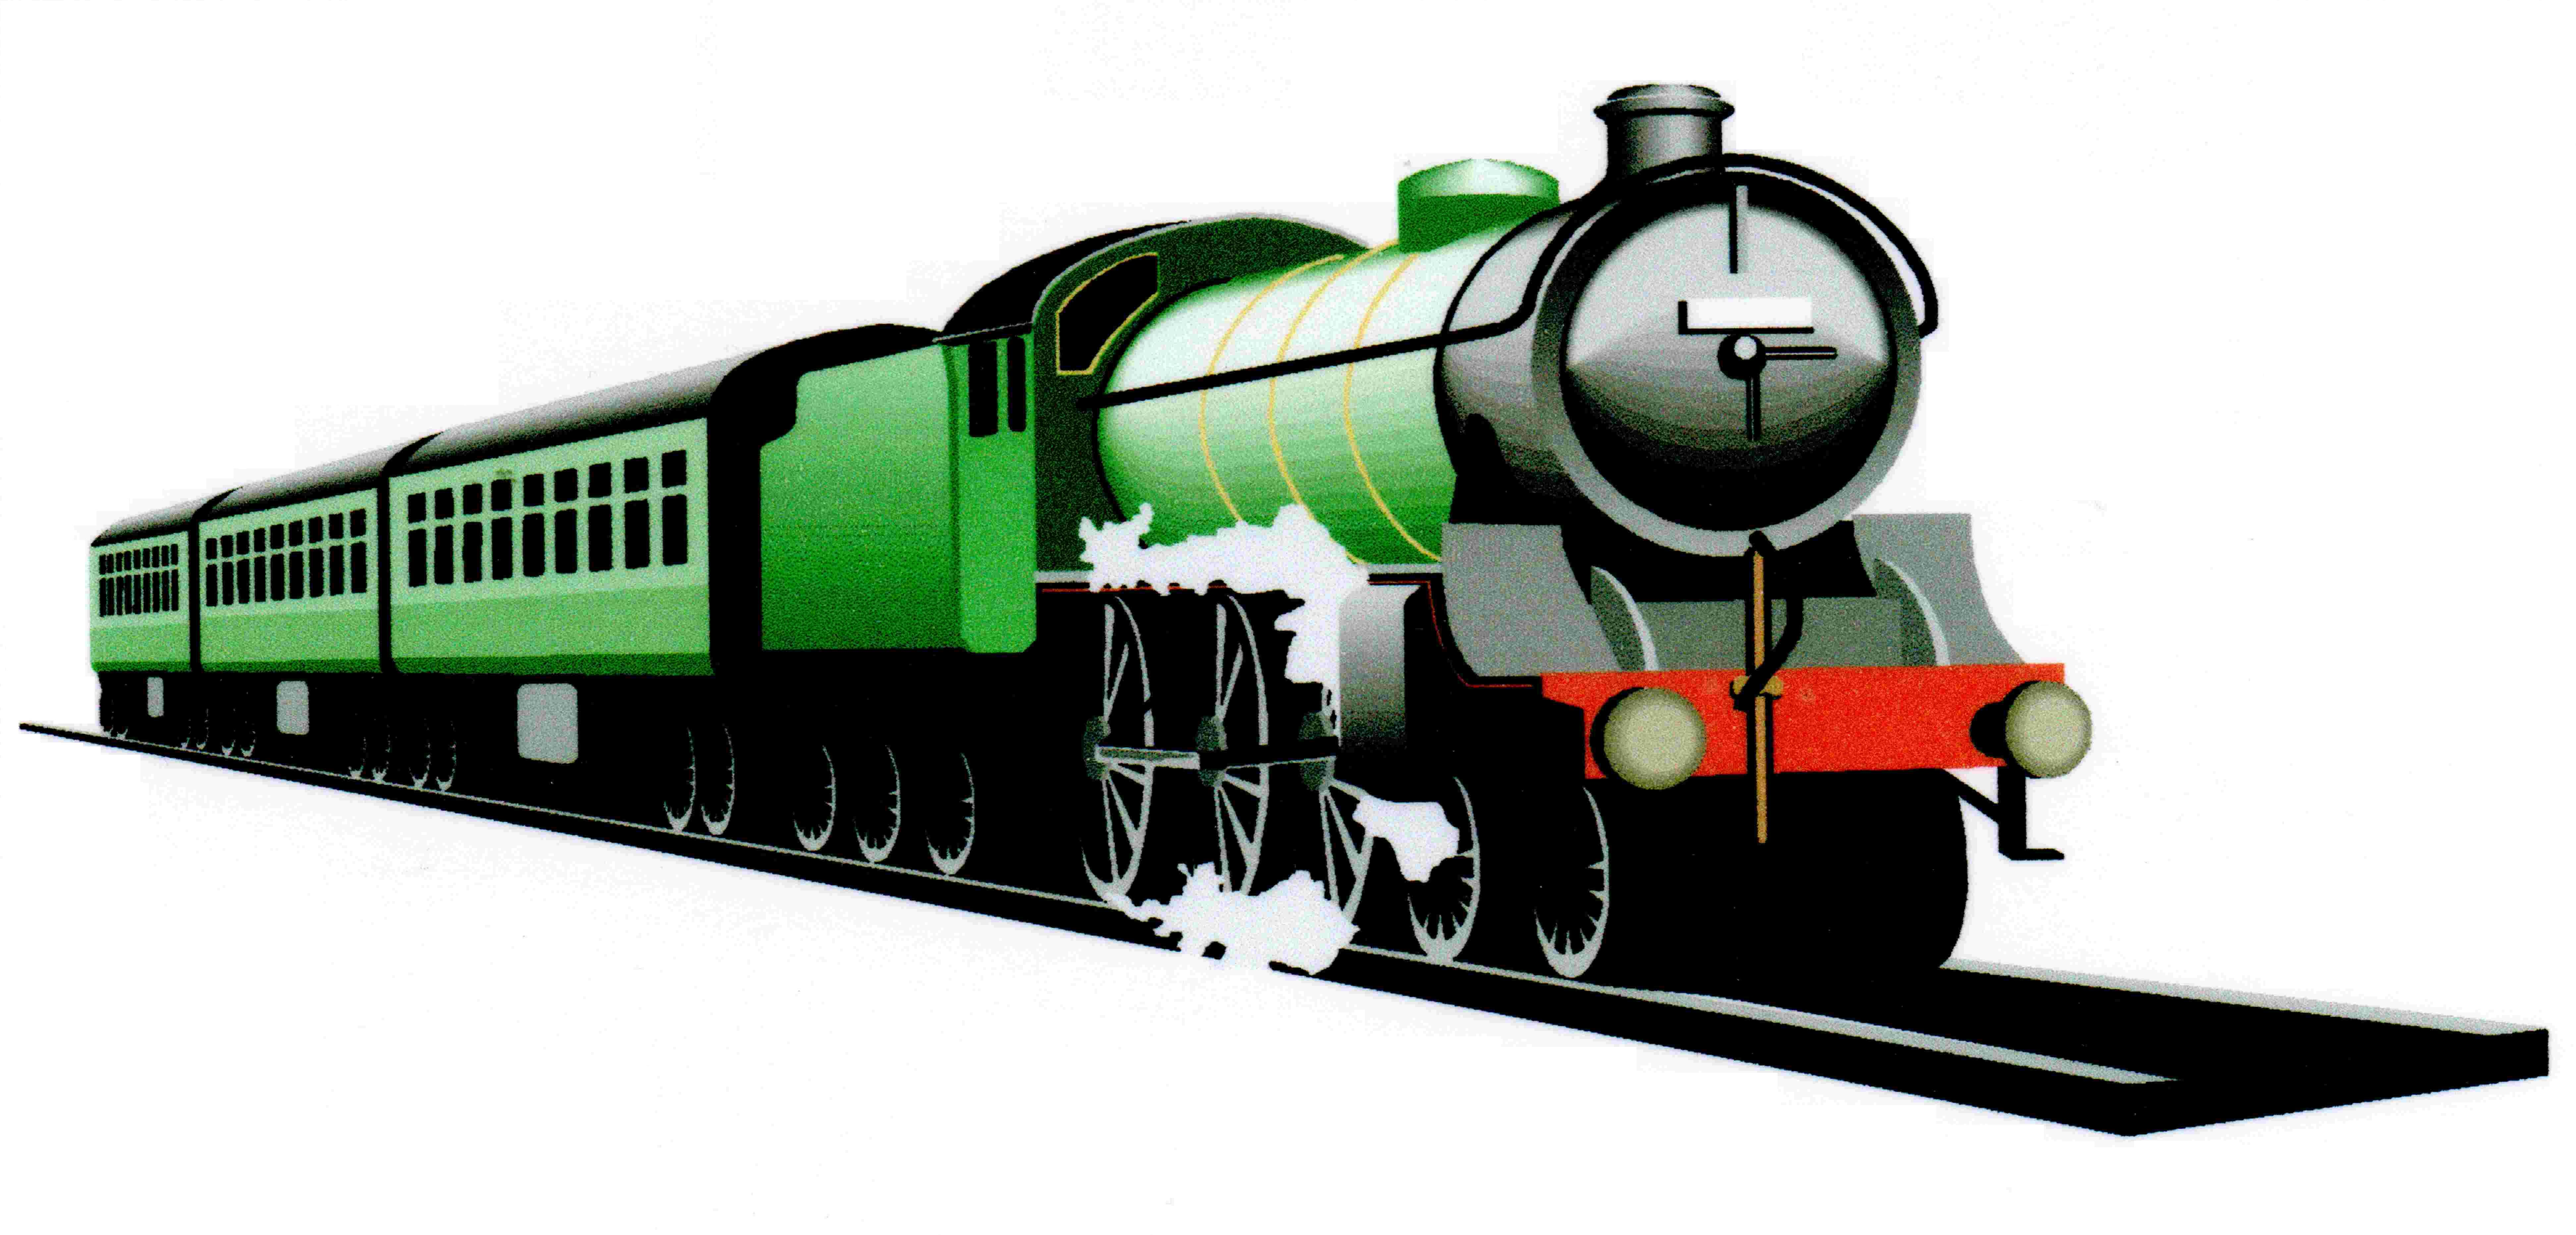 Animated Train Pictures | Free download on ClipArtMag